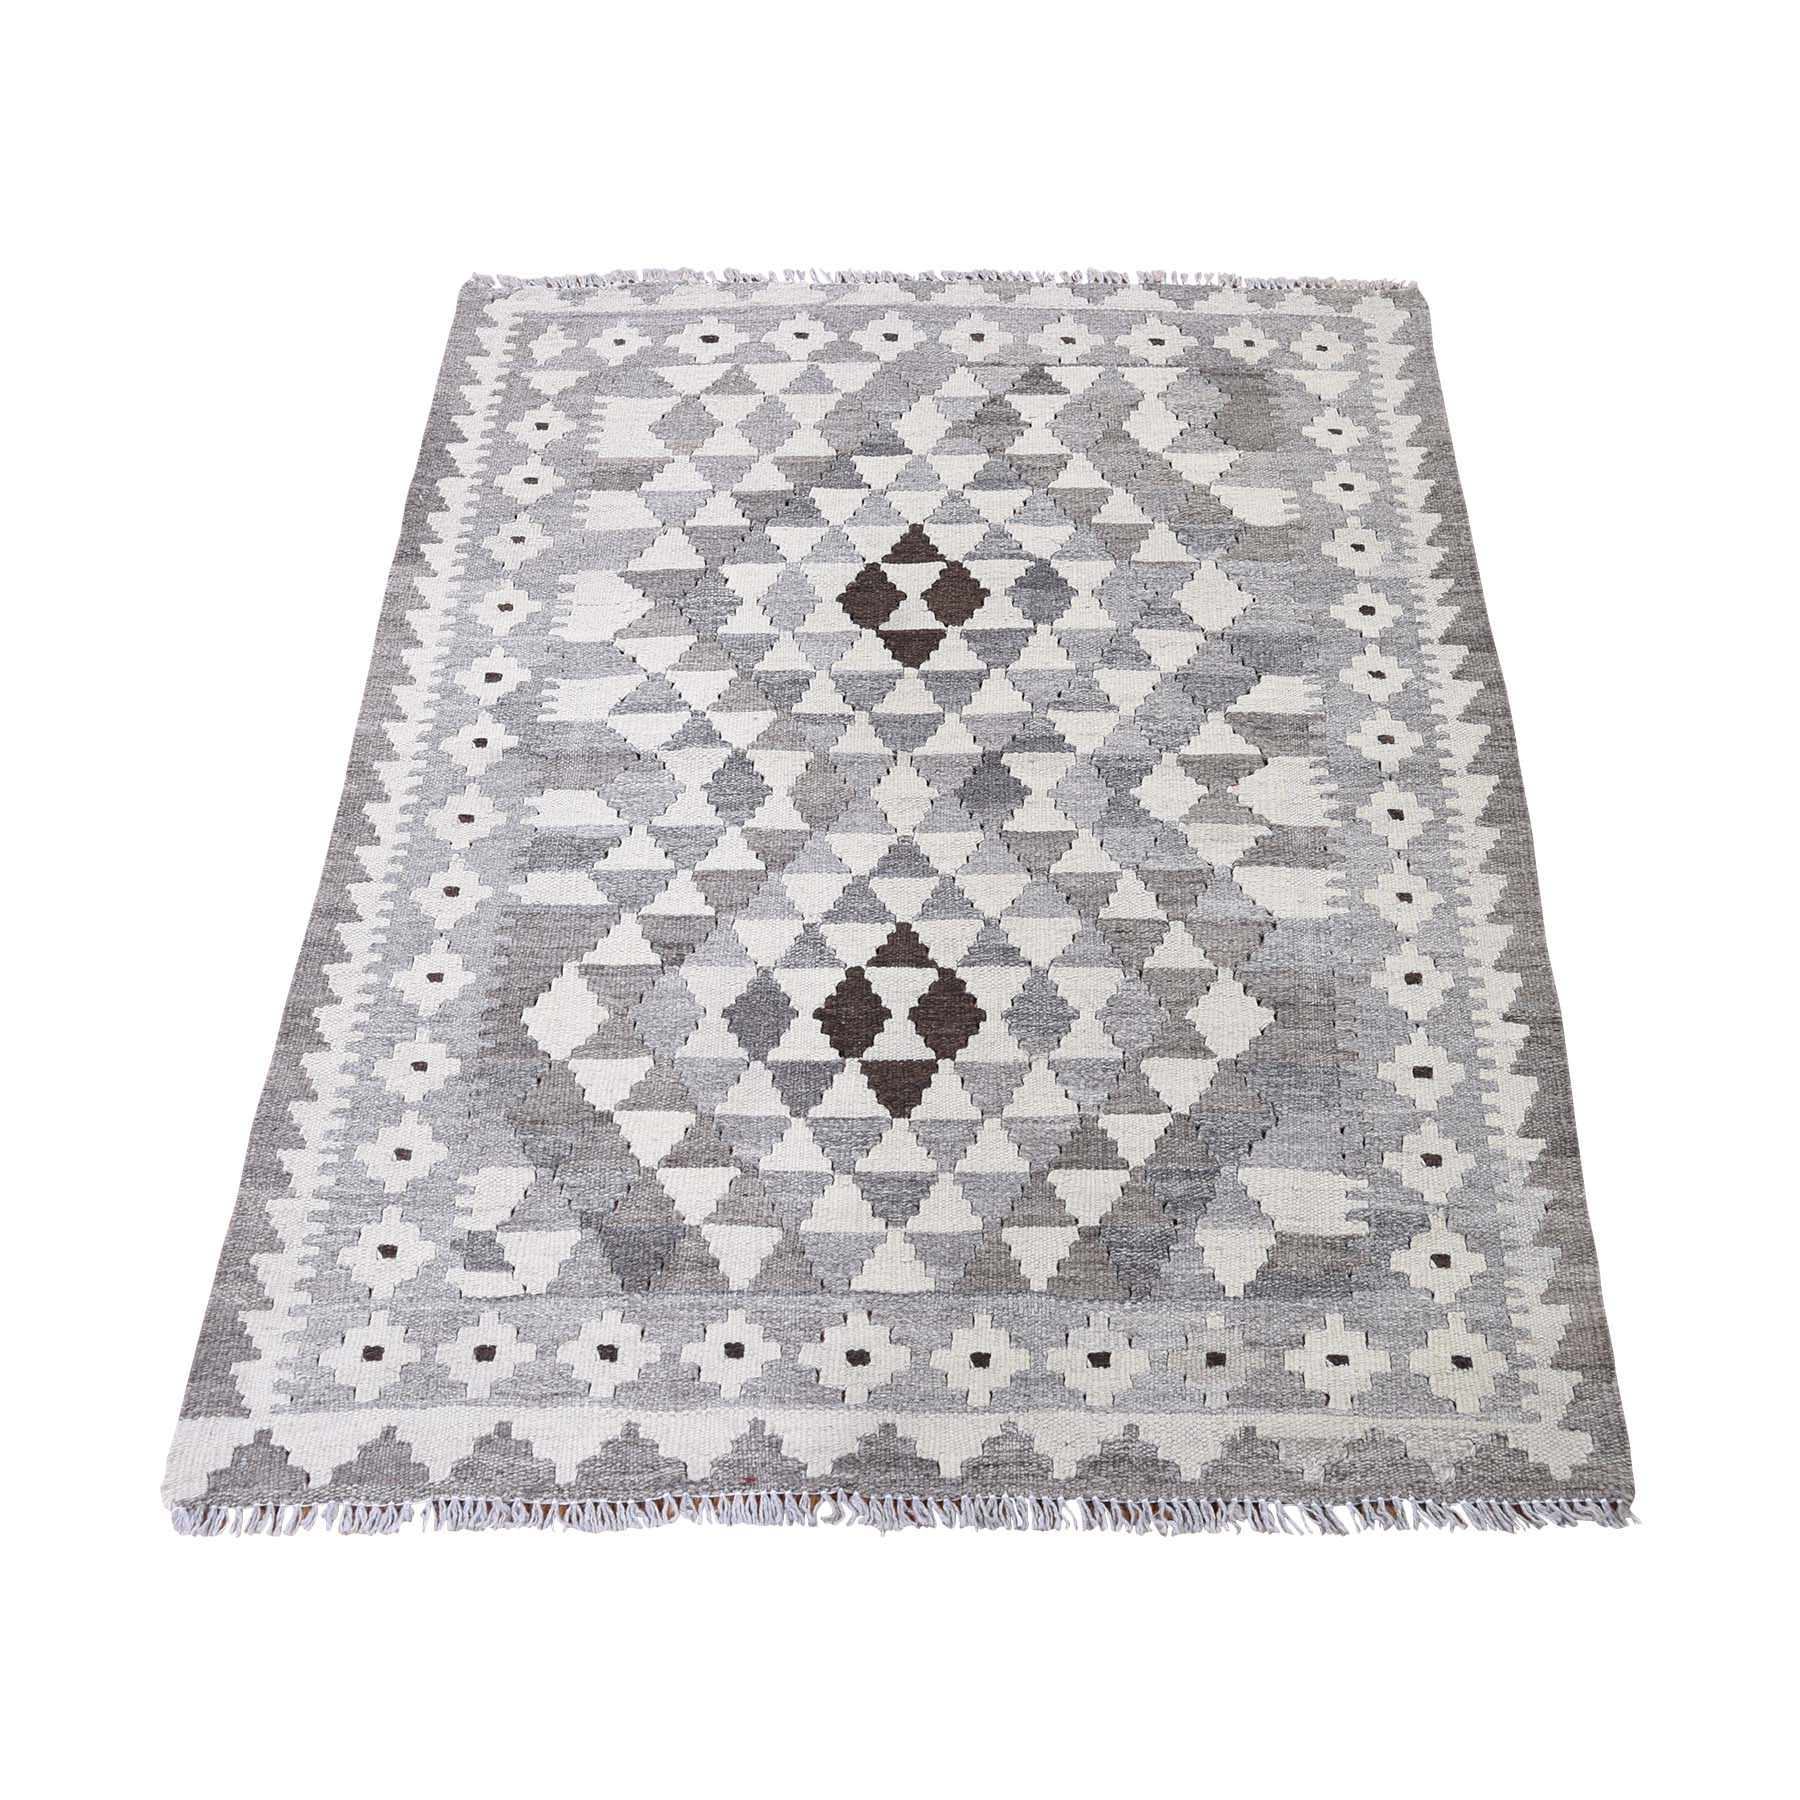 "2'10""X3'9"" Undyed Natural Wool Afghan Kilim Hand-Woven Oriental Rug moadd70c"